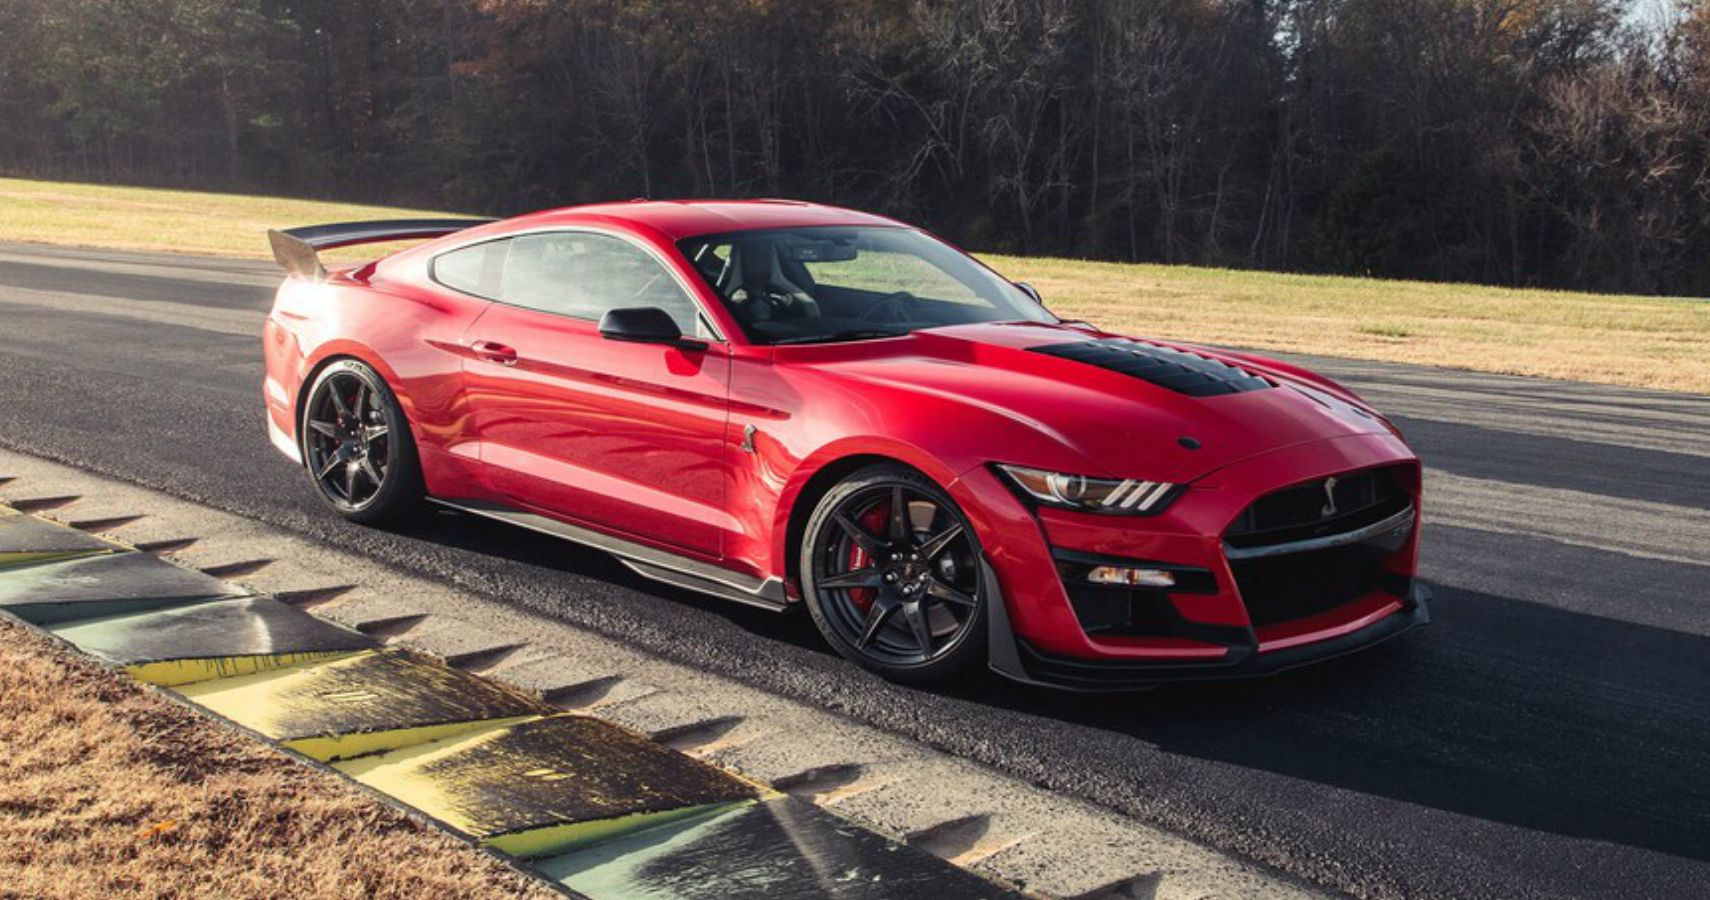 first look at the 2020 ford mustang shelby gt500 hotcars the 2020 ford mustang shelby gt500